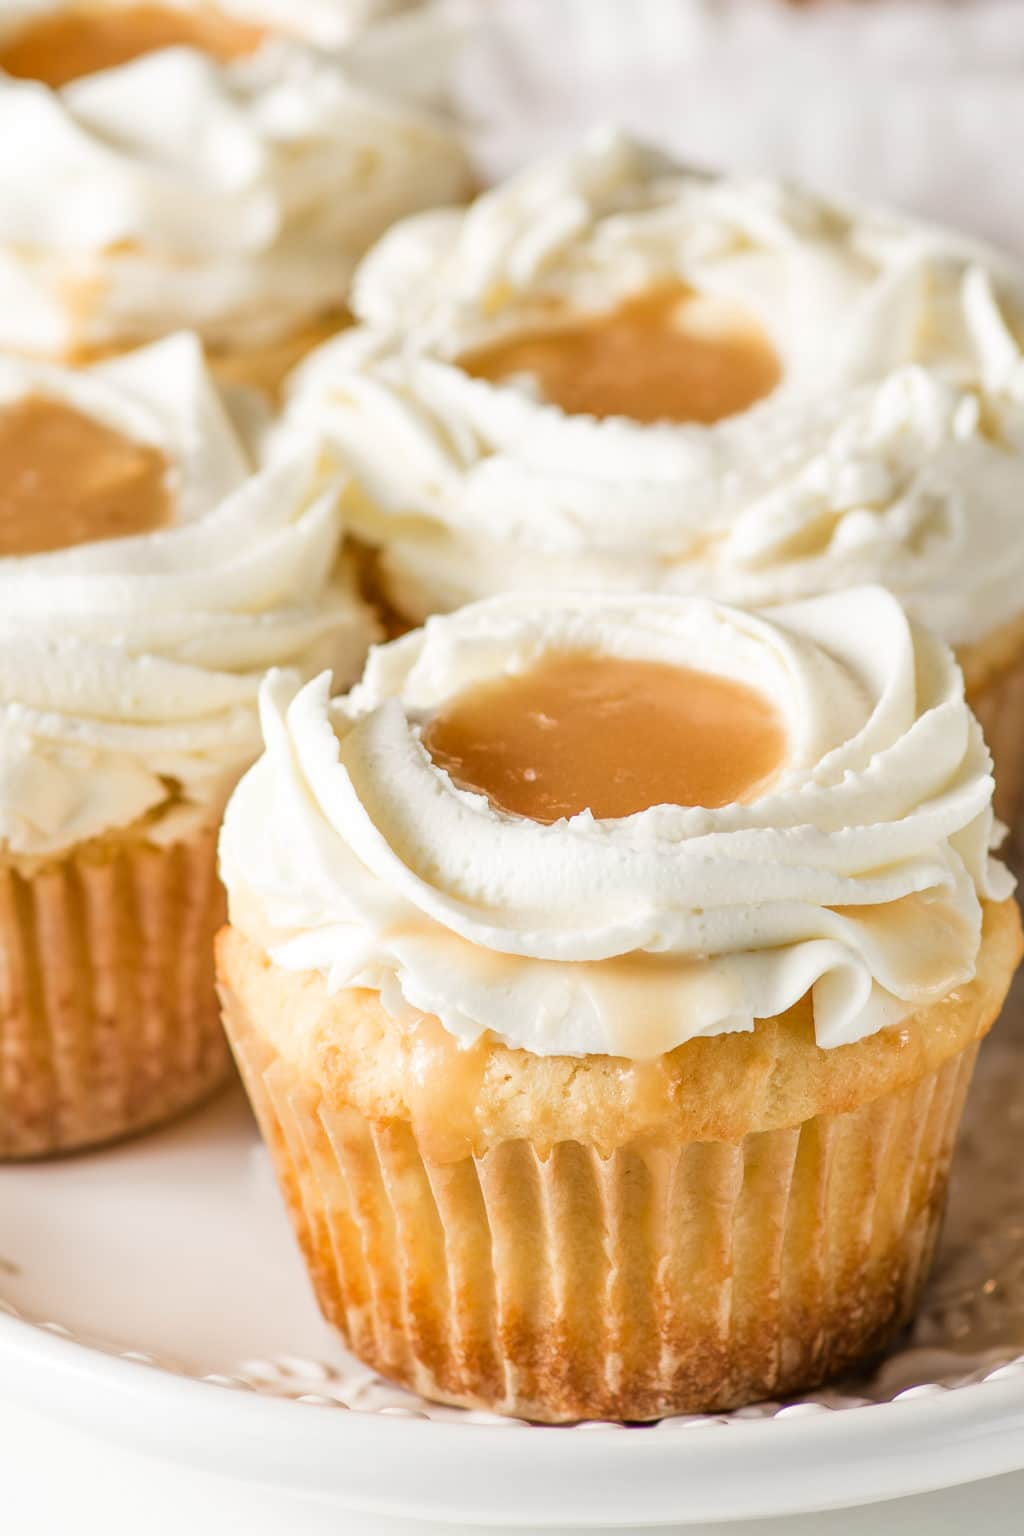 A plate of salted caramel cupcakes with piped cream cheese frosting